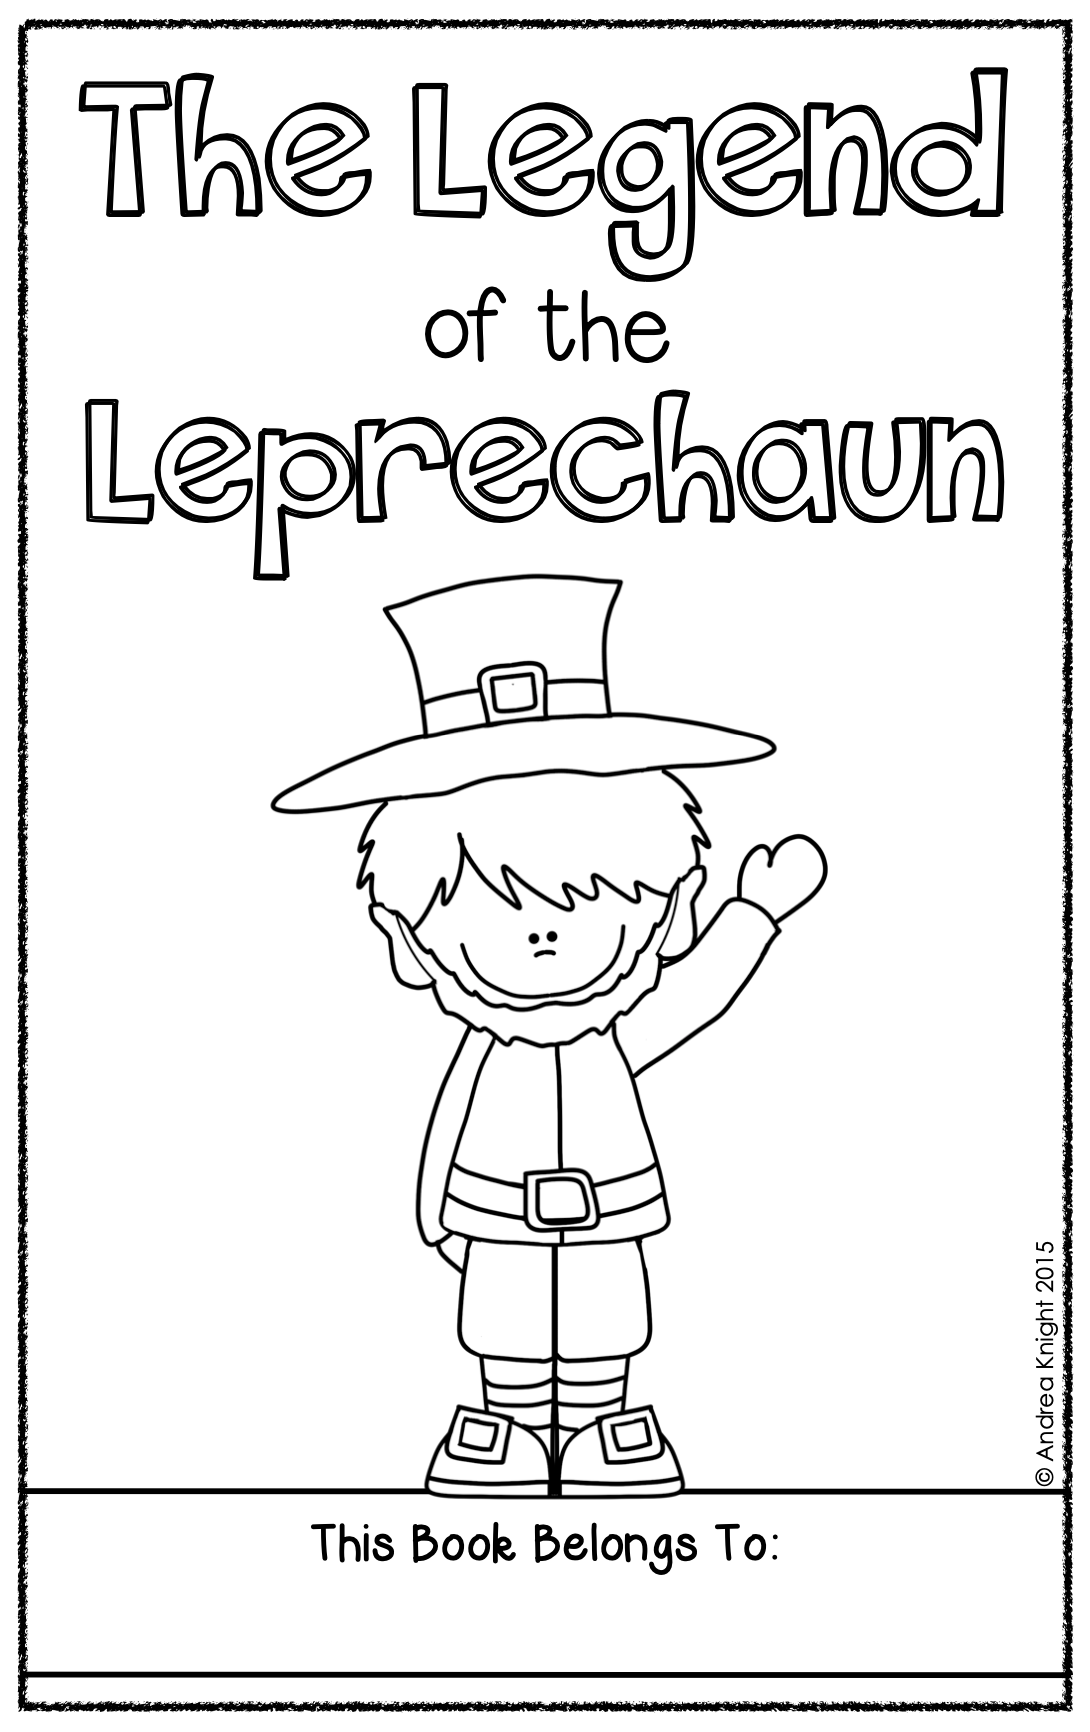 The Legend Of The Leprechaun A Holiday Student Book For